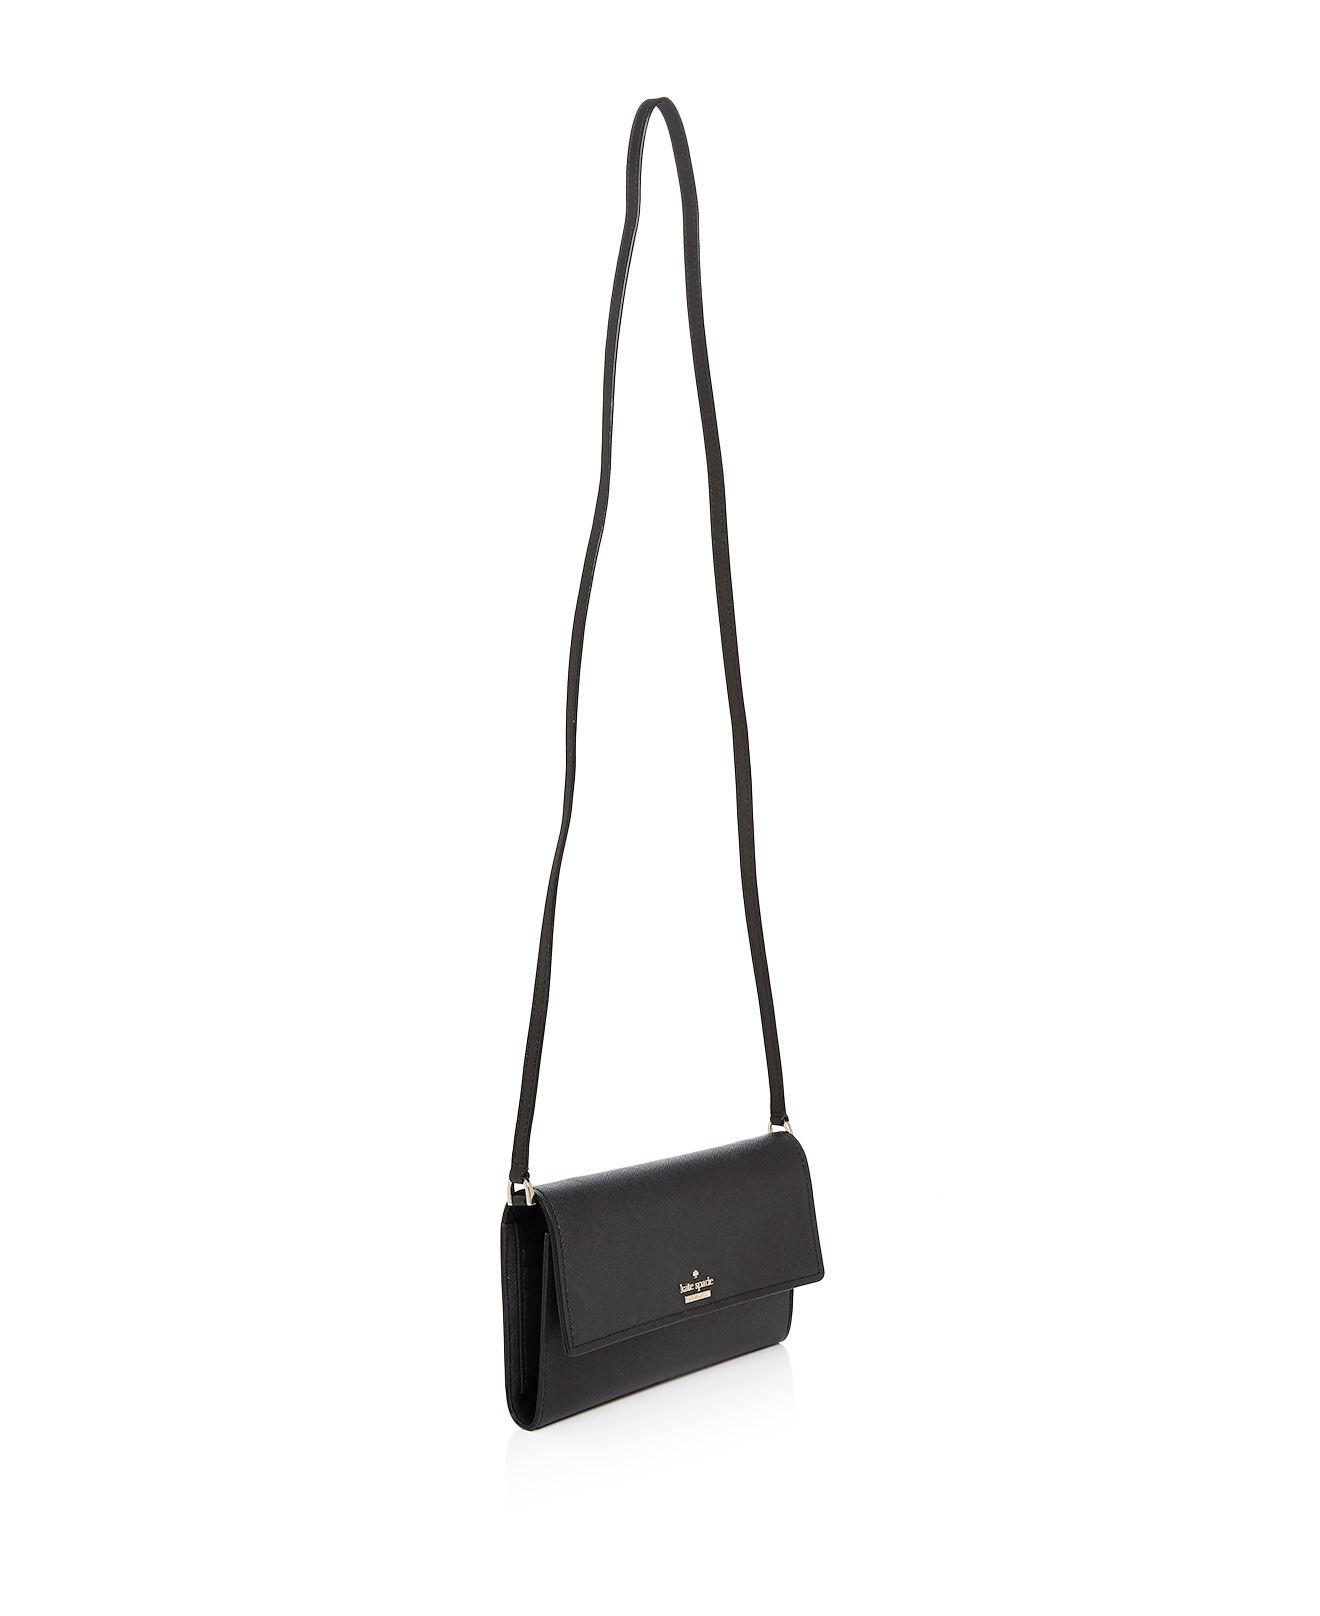 Kate Spade Leather Cameron Street Stormie Crossbody in Black/Gold (Black)